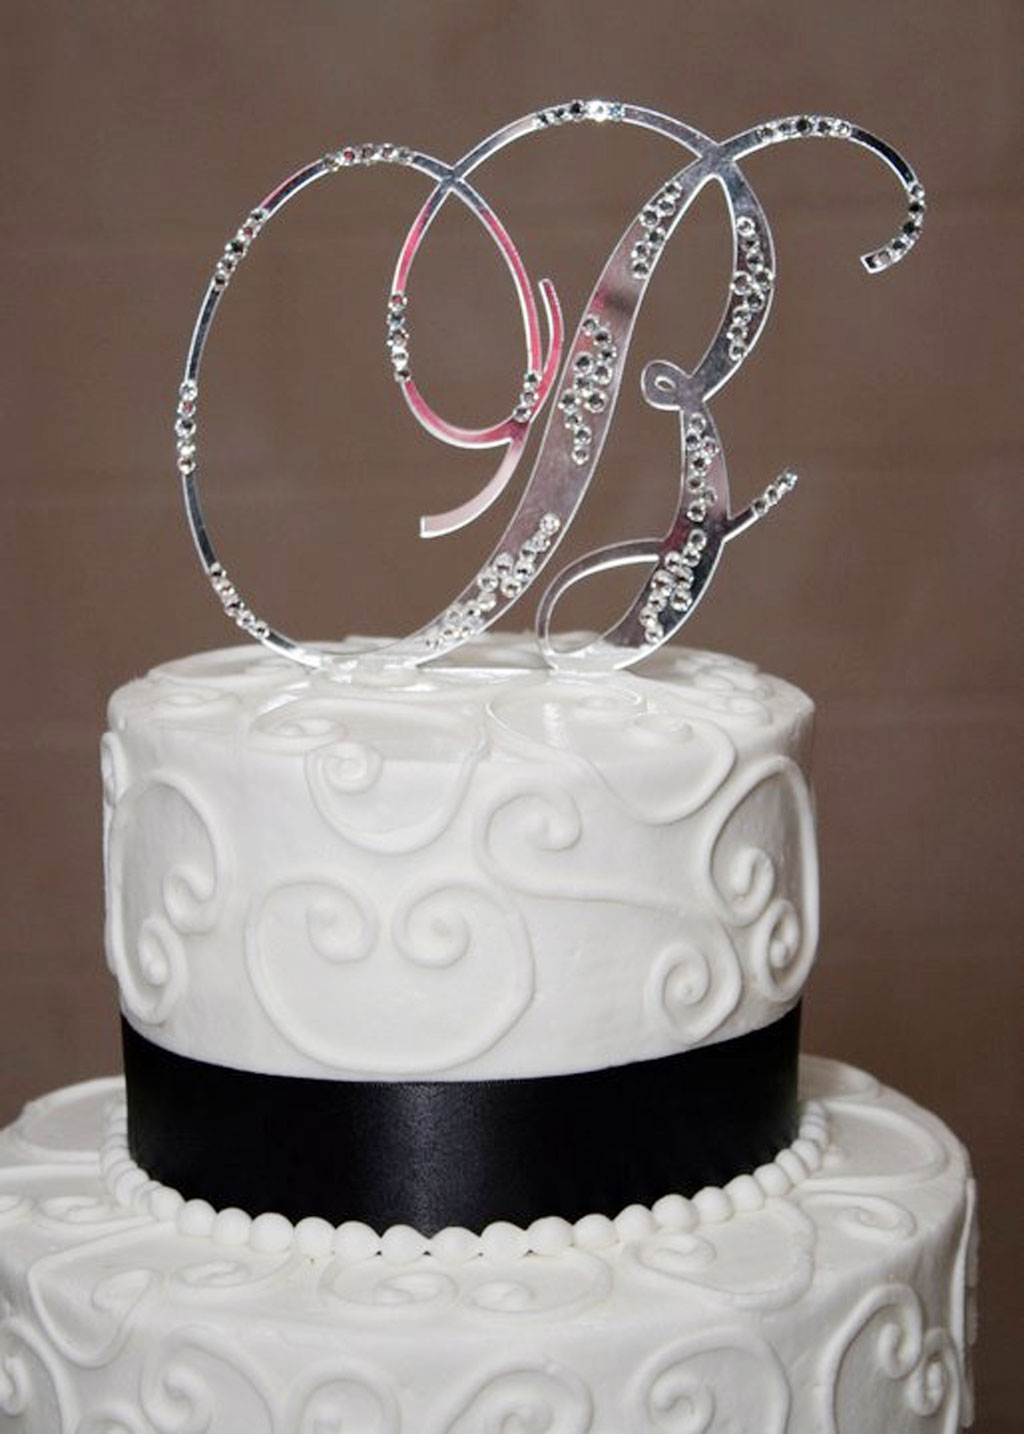 initial b wedding bling cake topper wedding cake cake ideas by. Black Bedroom Furniture Sets. Home Design Ideas